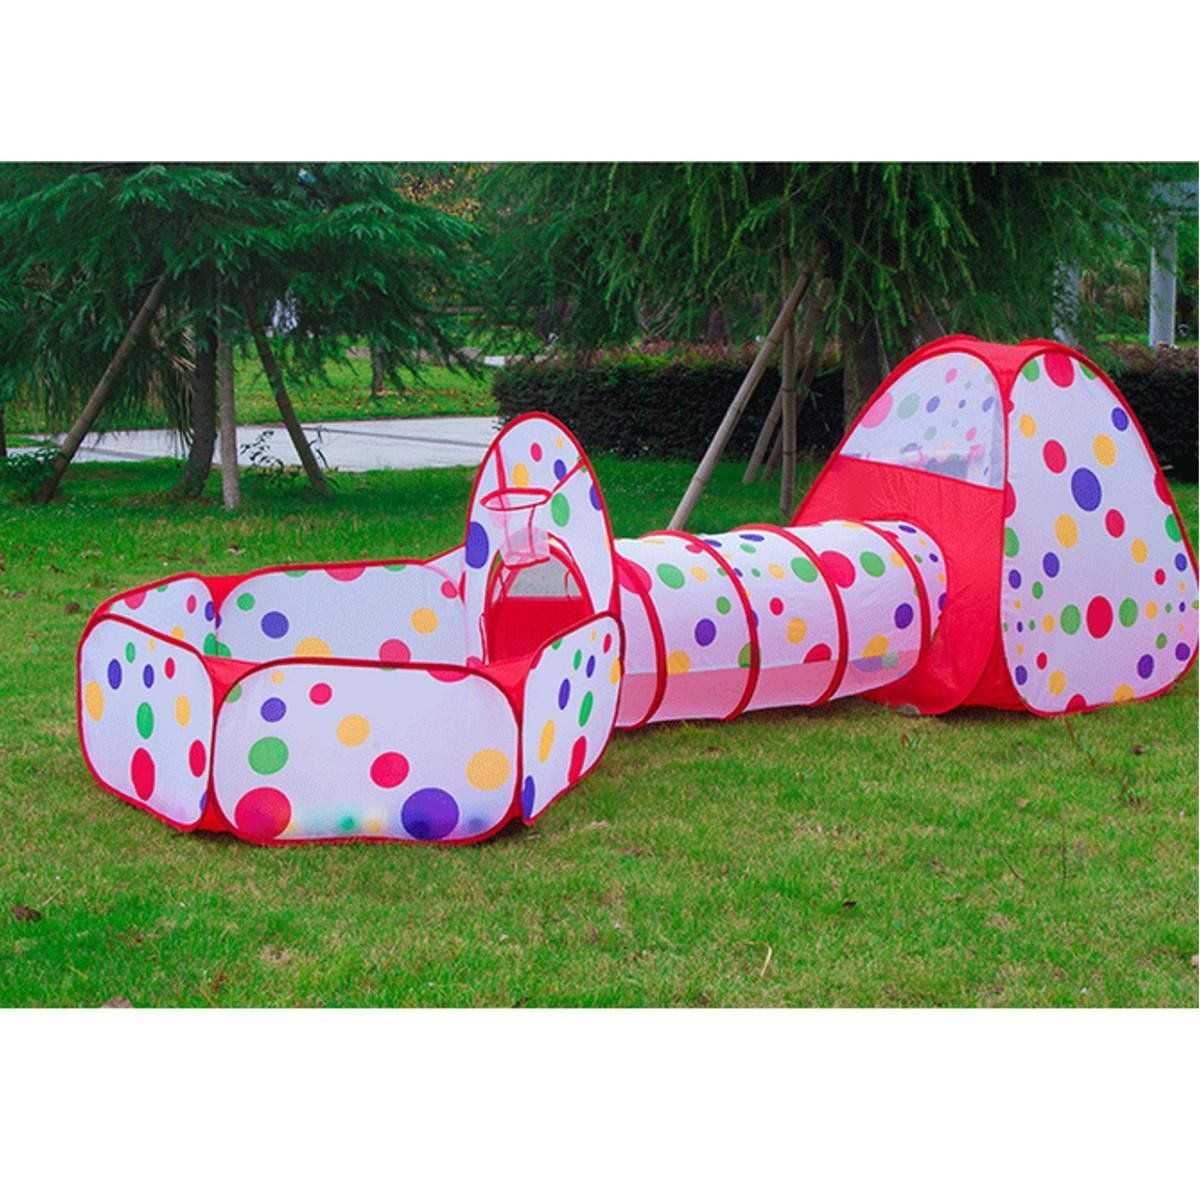 3pcs/set Foldable Kids Toddler Tunnel Pop Up Play Tent Toys For Children Indoor Outdoor  sc 1 st  Pinterest & 3pcs/set Foldable Kids Toddler Tunnel Pop Up Play Tent Toys For ...